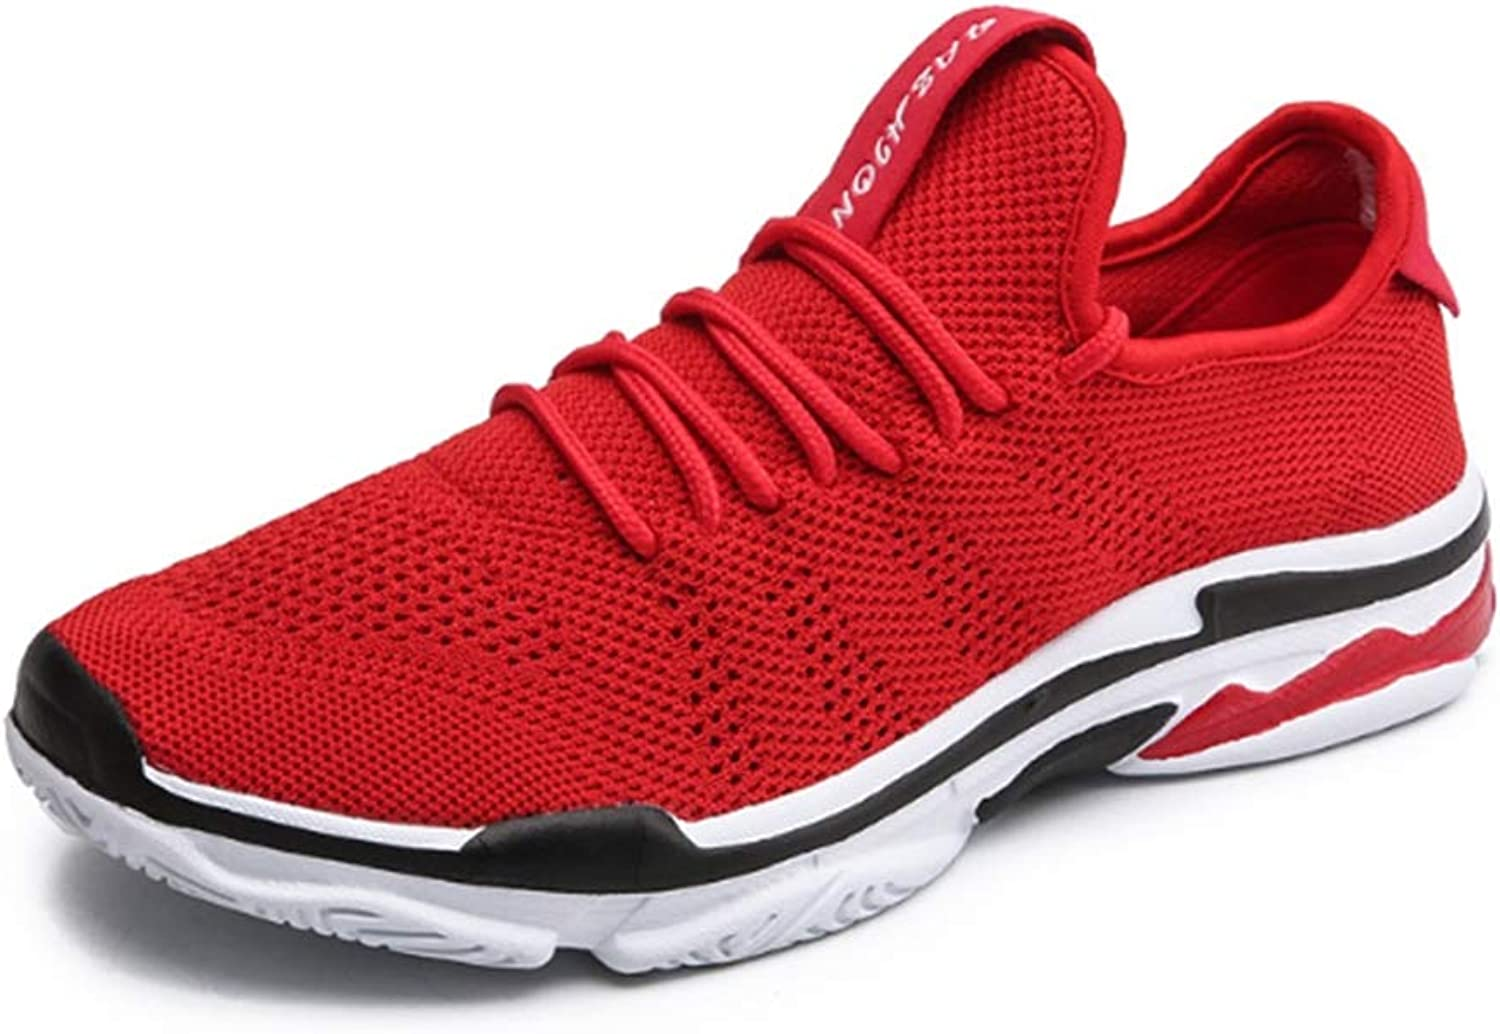 Unisex Trainer Sports shoes, Leisure Flying Weaving Mesh Breathable Damping Lightweight Running shoes, Runway, Outdoor, Grassland, Jogging,Red,45